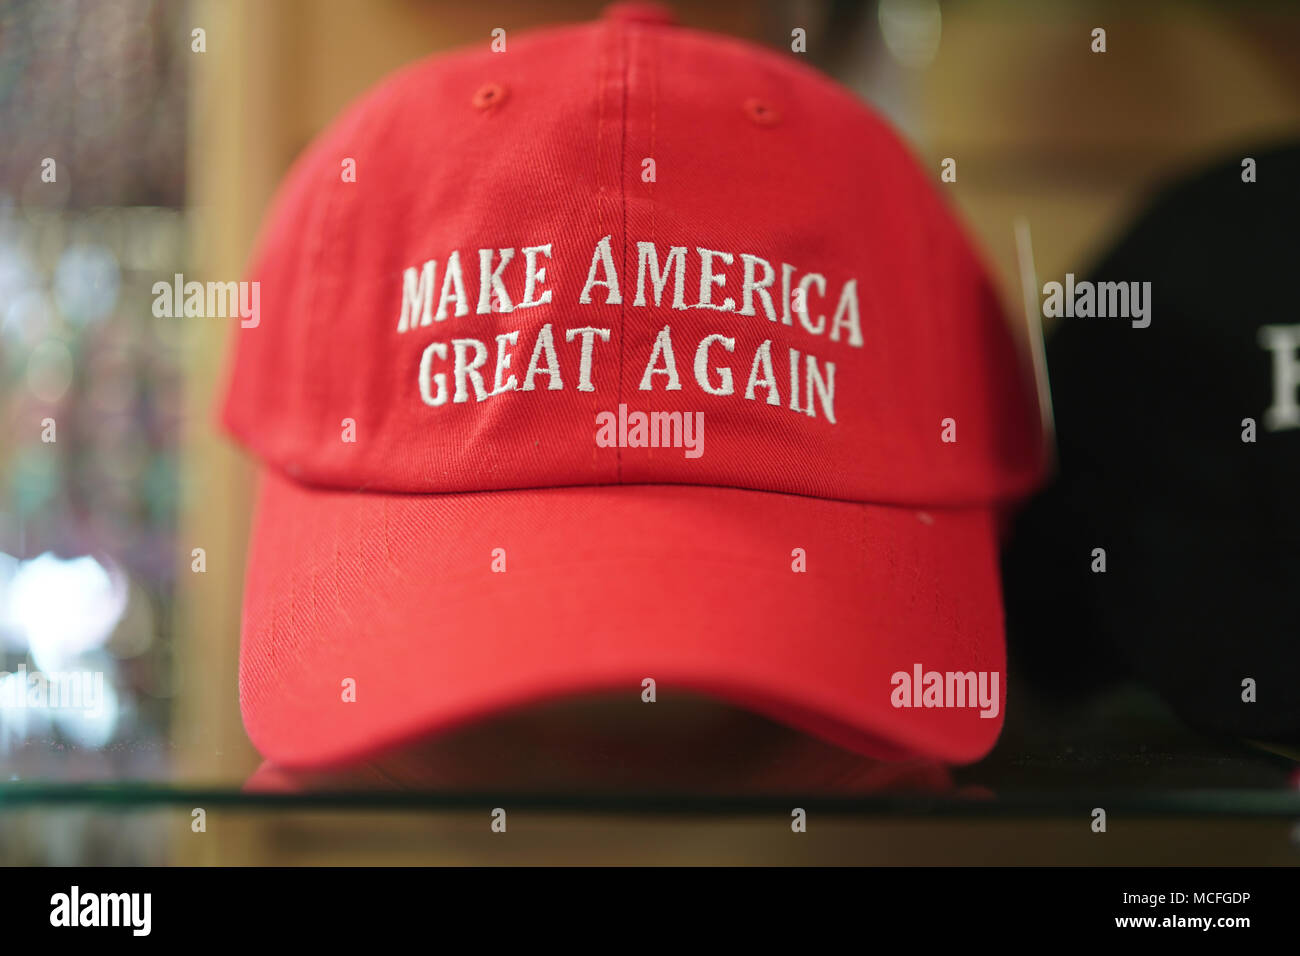 97a3cb0b66e A Make America Great Again hat on sale in the White House gift shop in  Washington